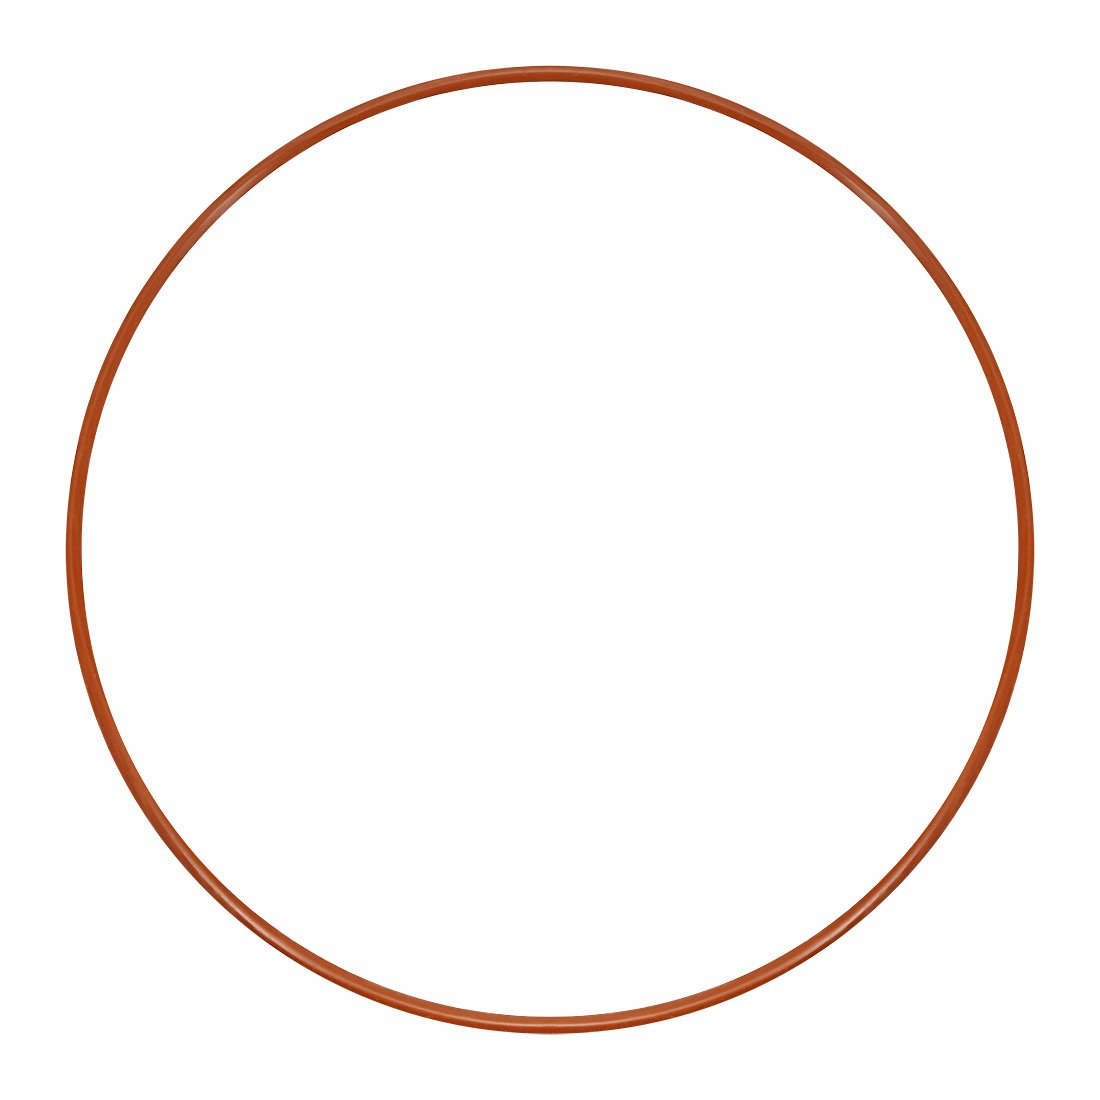 10 Pcs Silicone O Ring Seal Sealing Gasket 56mm x 62mm x 3mm Sourcingmap a12041800ux0182